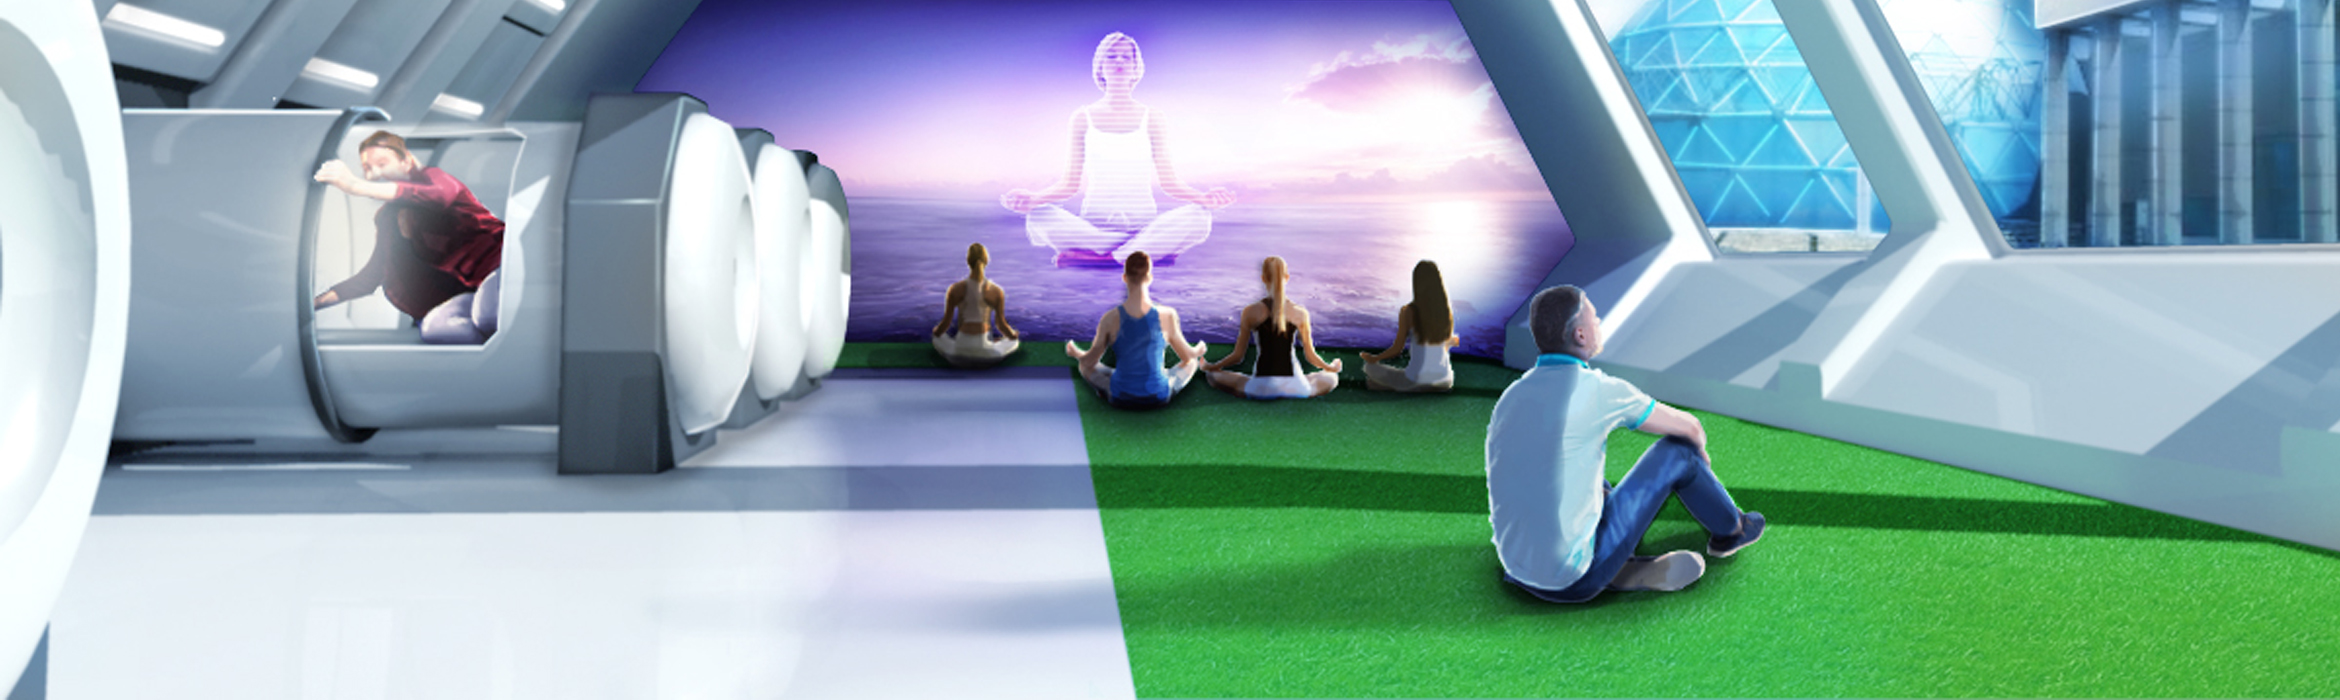 Illustration of the future of the office demonstrating an office designed for employee wellness